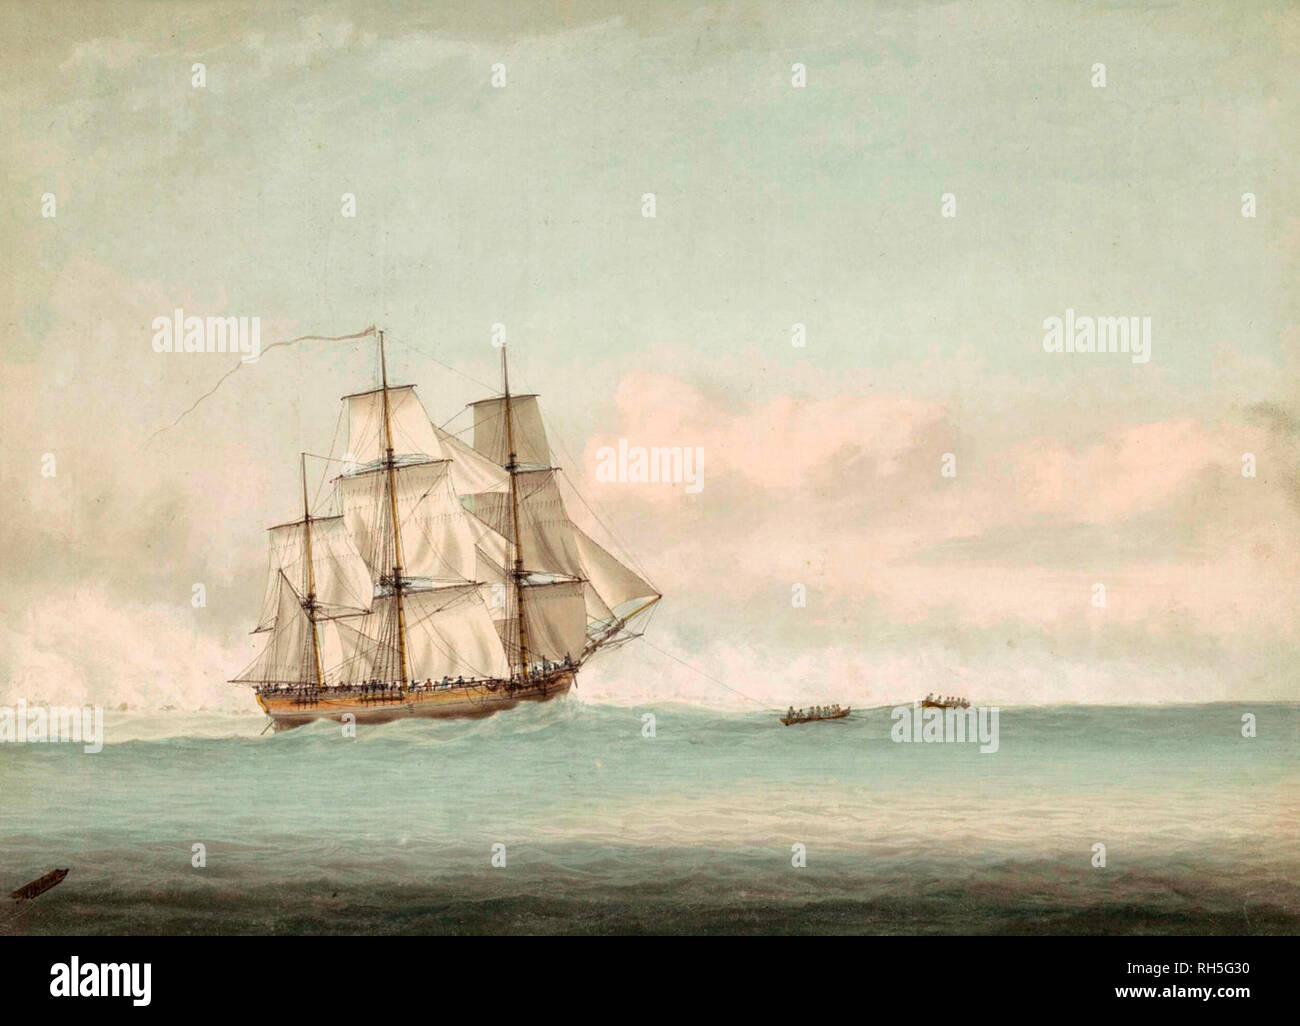 HMS Endeavour off the coast of New Holland - Samuel Atkins, 1794 - Stock Image